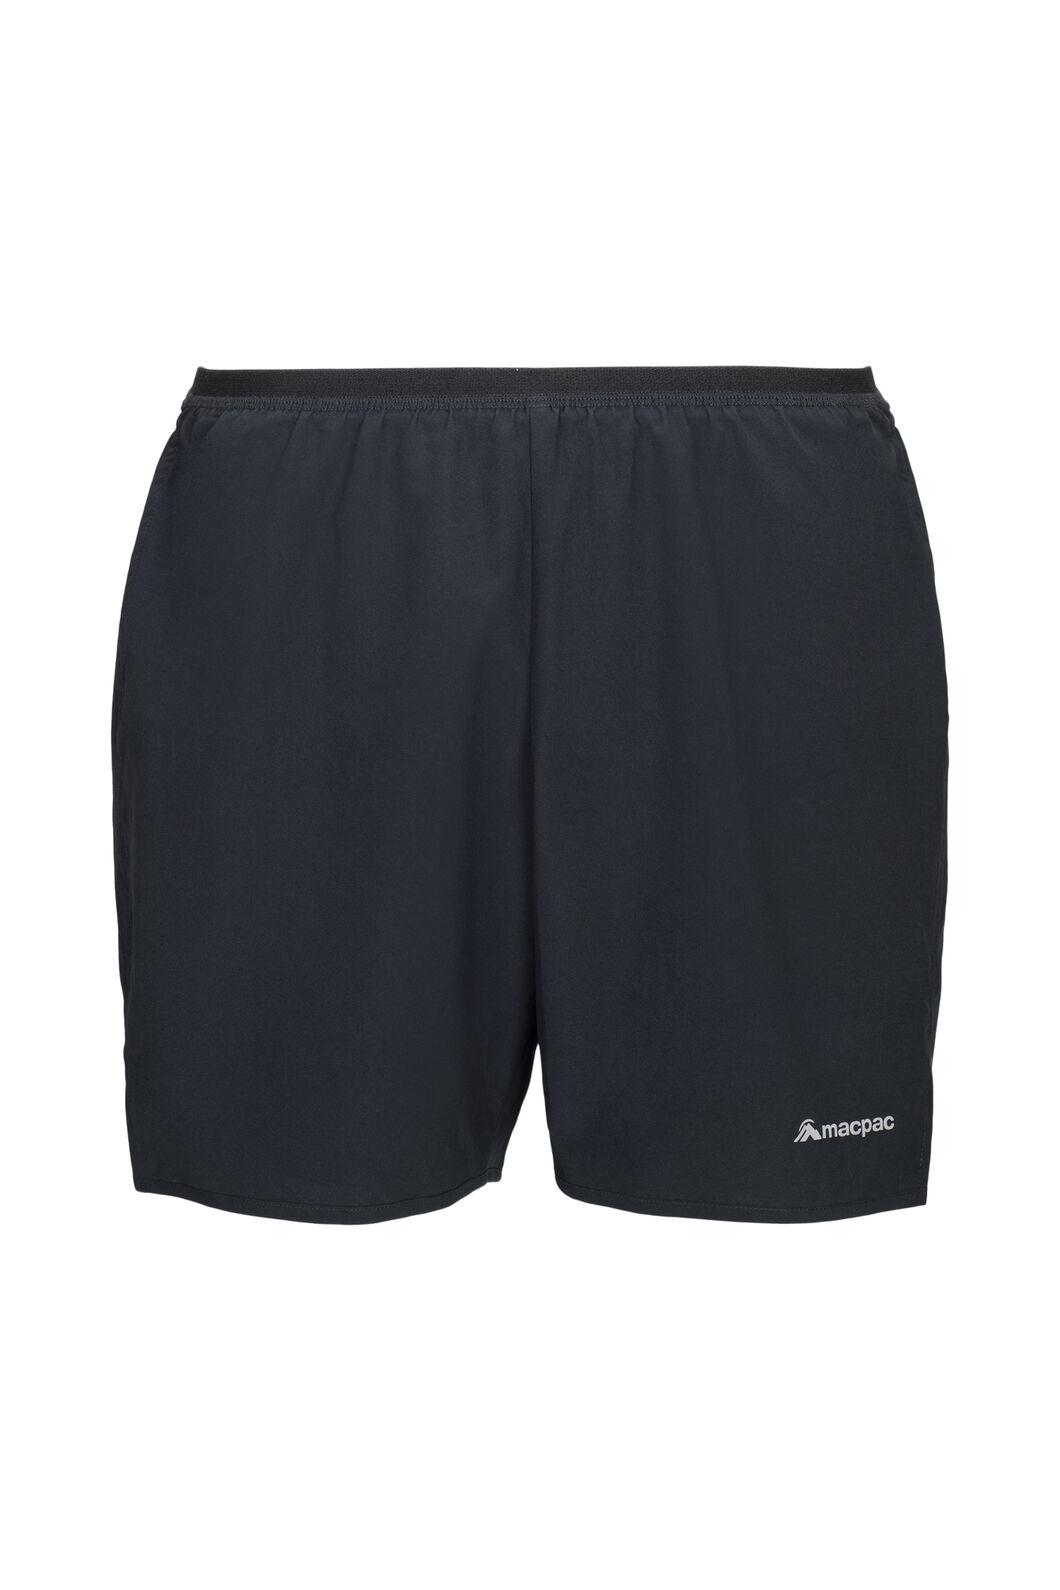 Macpac Caples Trail Shorts — Men's, Black, hi-res